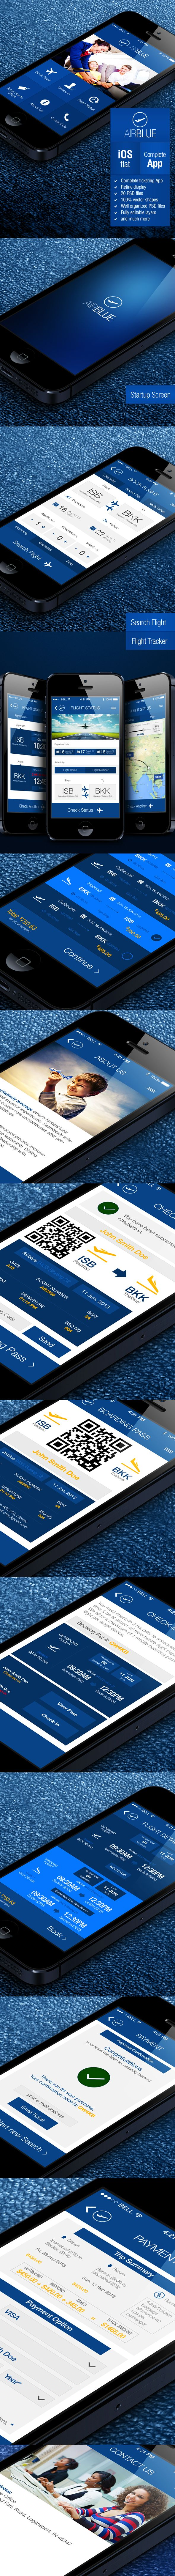 AirBlue - Flight Ticket Booking App by fida khattak, via Behance